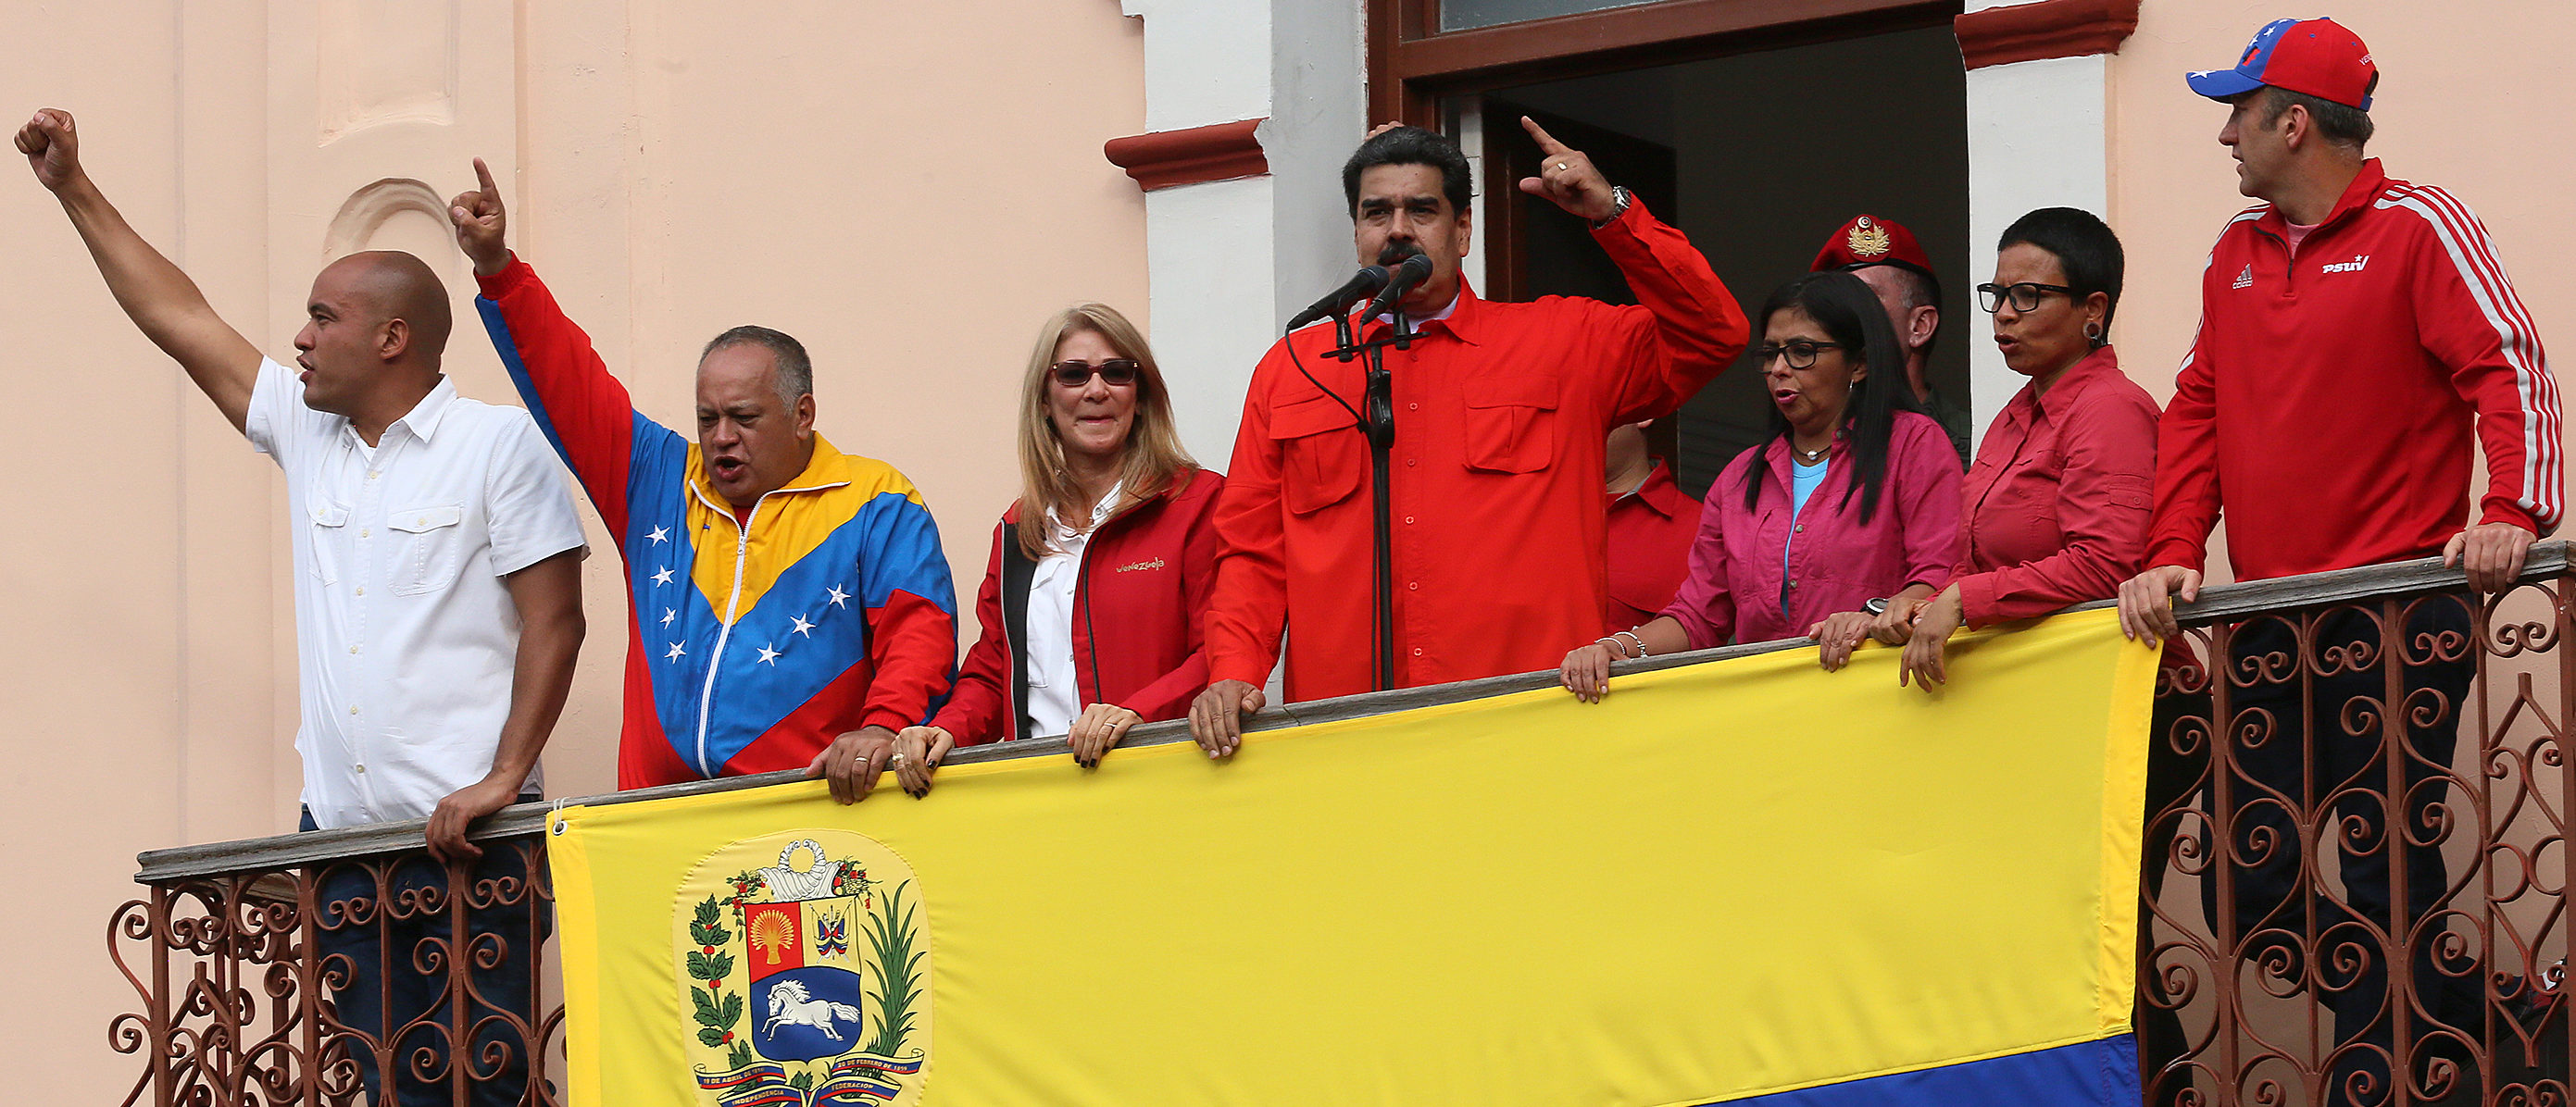 CARACAS, VENEZUELA - JANUARY 23: President of Venezuela Nicolás Maduro (C) waves a national flag as he is escorted by (FROM L TO R) Hector Rodriguez, Governor of Miranda; Diosdado Cabello, President of National Constitutional Assembly; Cilia Flores, First Lady; Excutive Vice President Delcy Rodriguez; Major Erika Farias and Economic Vice President Tareck El Aissami at the Balcón del Pueblo of the Miraflores Government Palace on January 23, 2019 in Caracas, Venezuela. Earlier today, Venezuelan opposition leader and head of the National Assembly Juan Guaido declared self interim president as was officially accepted by presidents of many countries such as US, Brazil, Chile, Canada and Argentina. Head of Supreme Justice tribunal Juan Jose Mendoza urged general attorney to act against a constitution violation. Protests continue in Caracas. (Photo by Edilzon Gamez/Getty Images)